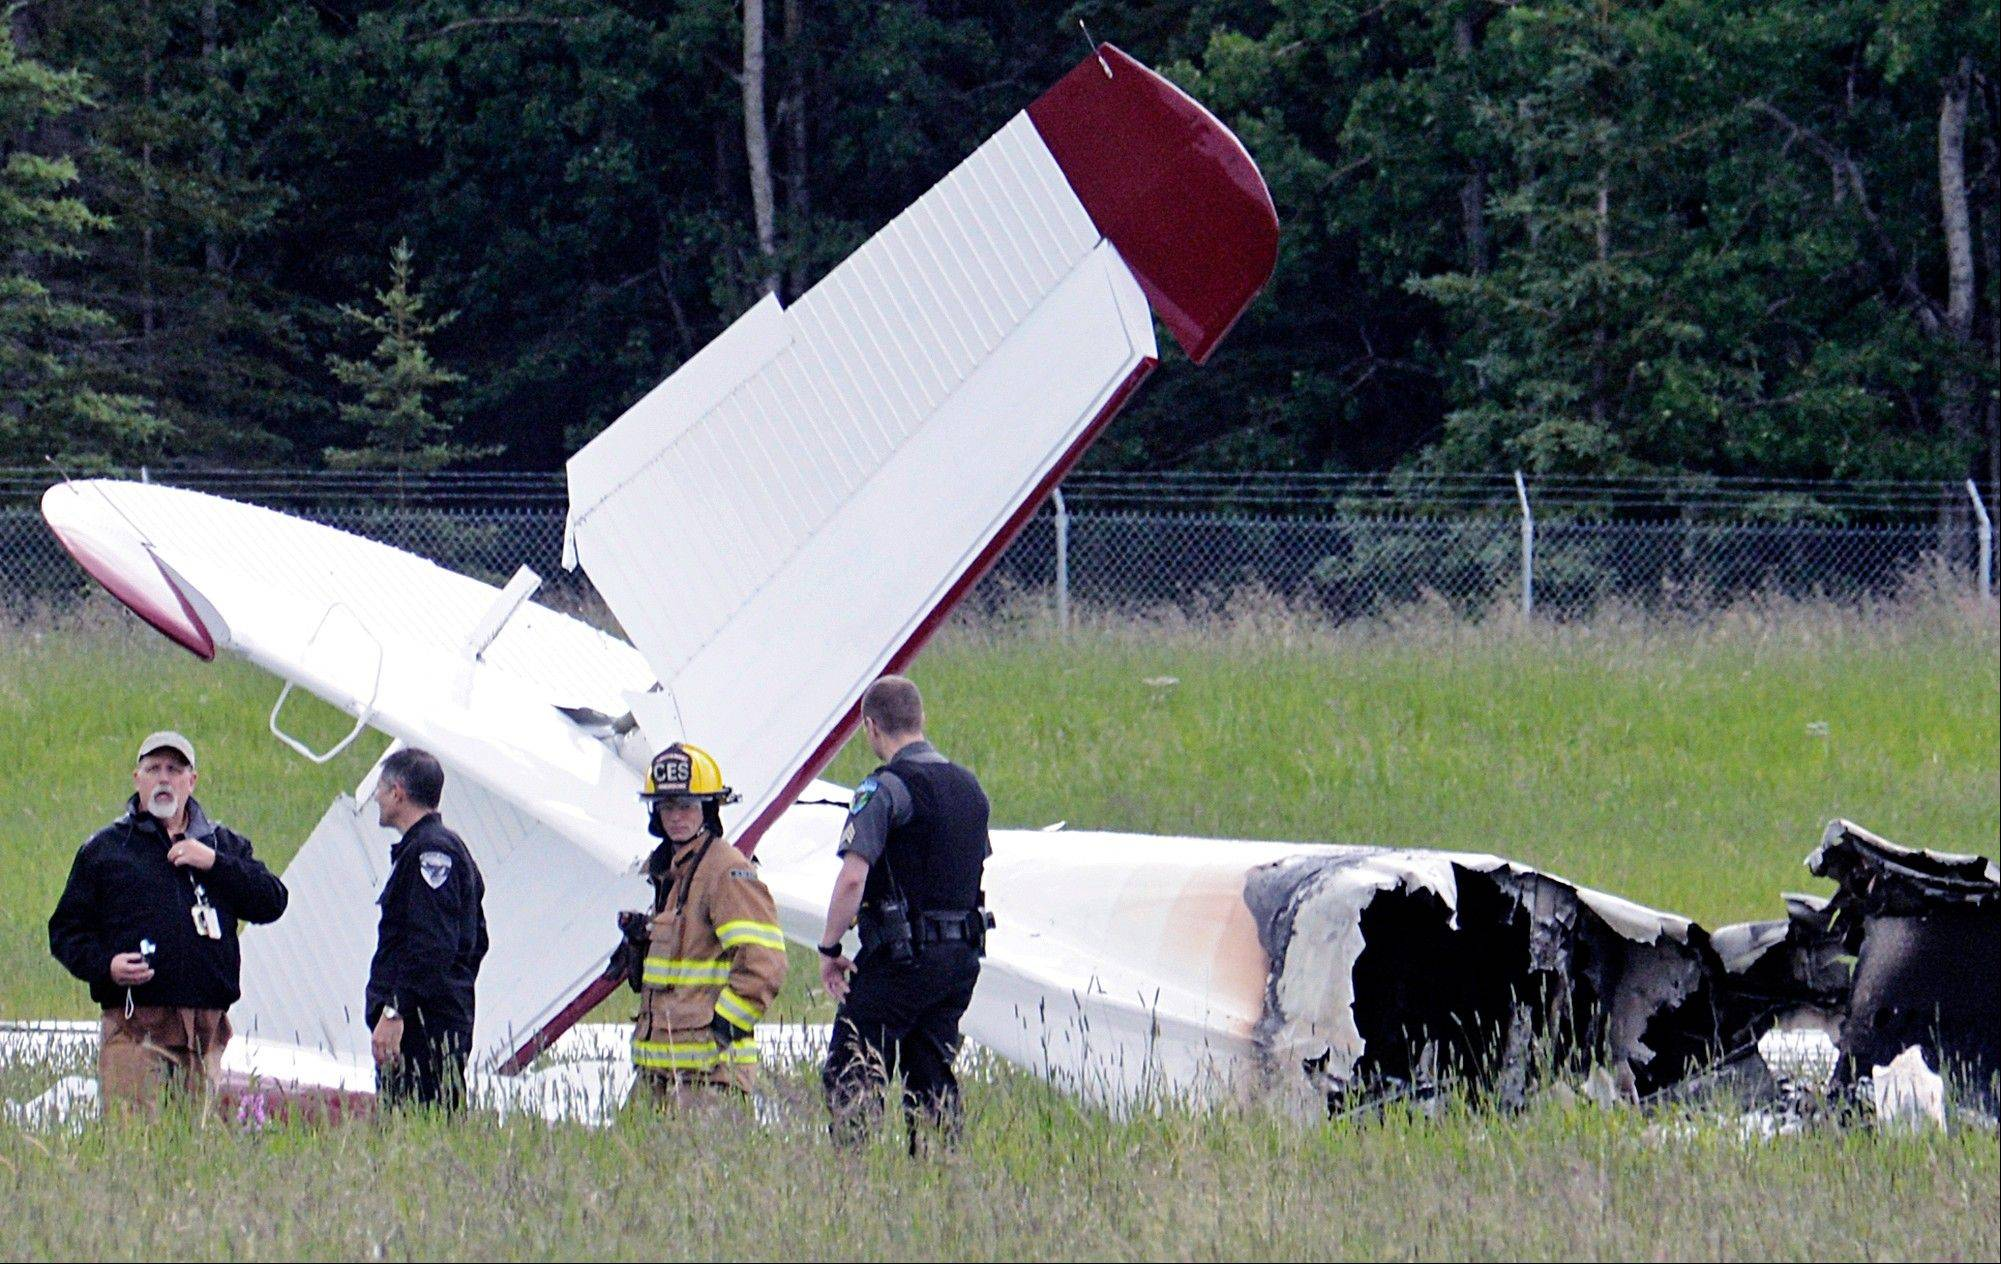 Police and emergency personnel stand near the remains of a fixed-wing aircraft that was engulfed in flames Sunday July 7, 2013 at the Soldotna Airport in Soldotna, Alaska. The crash killed all 10 passengers.